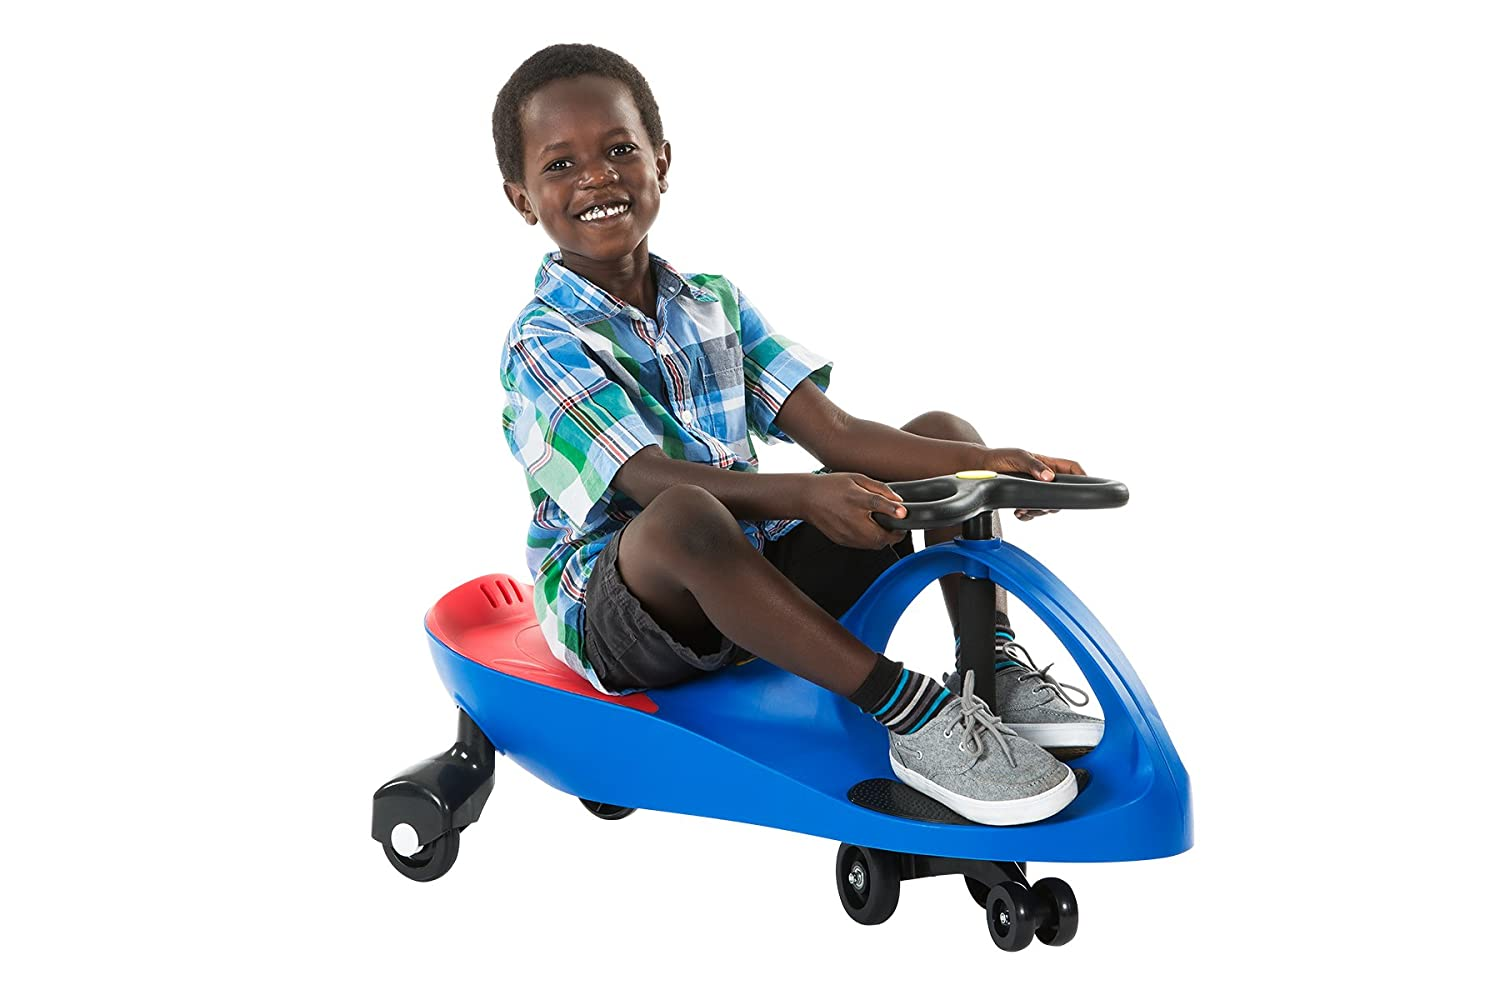 PlasmaCar– Ride On Toy, No batteries, gears, or pedals